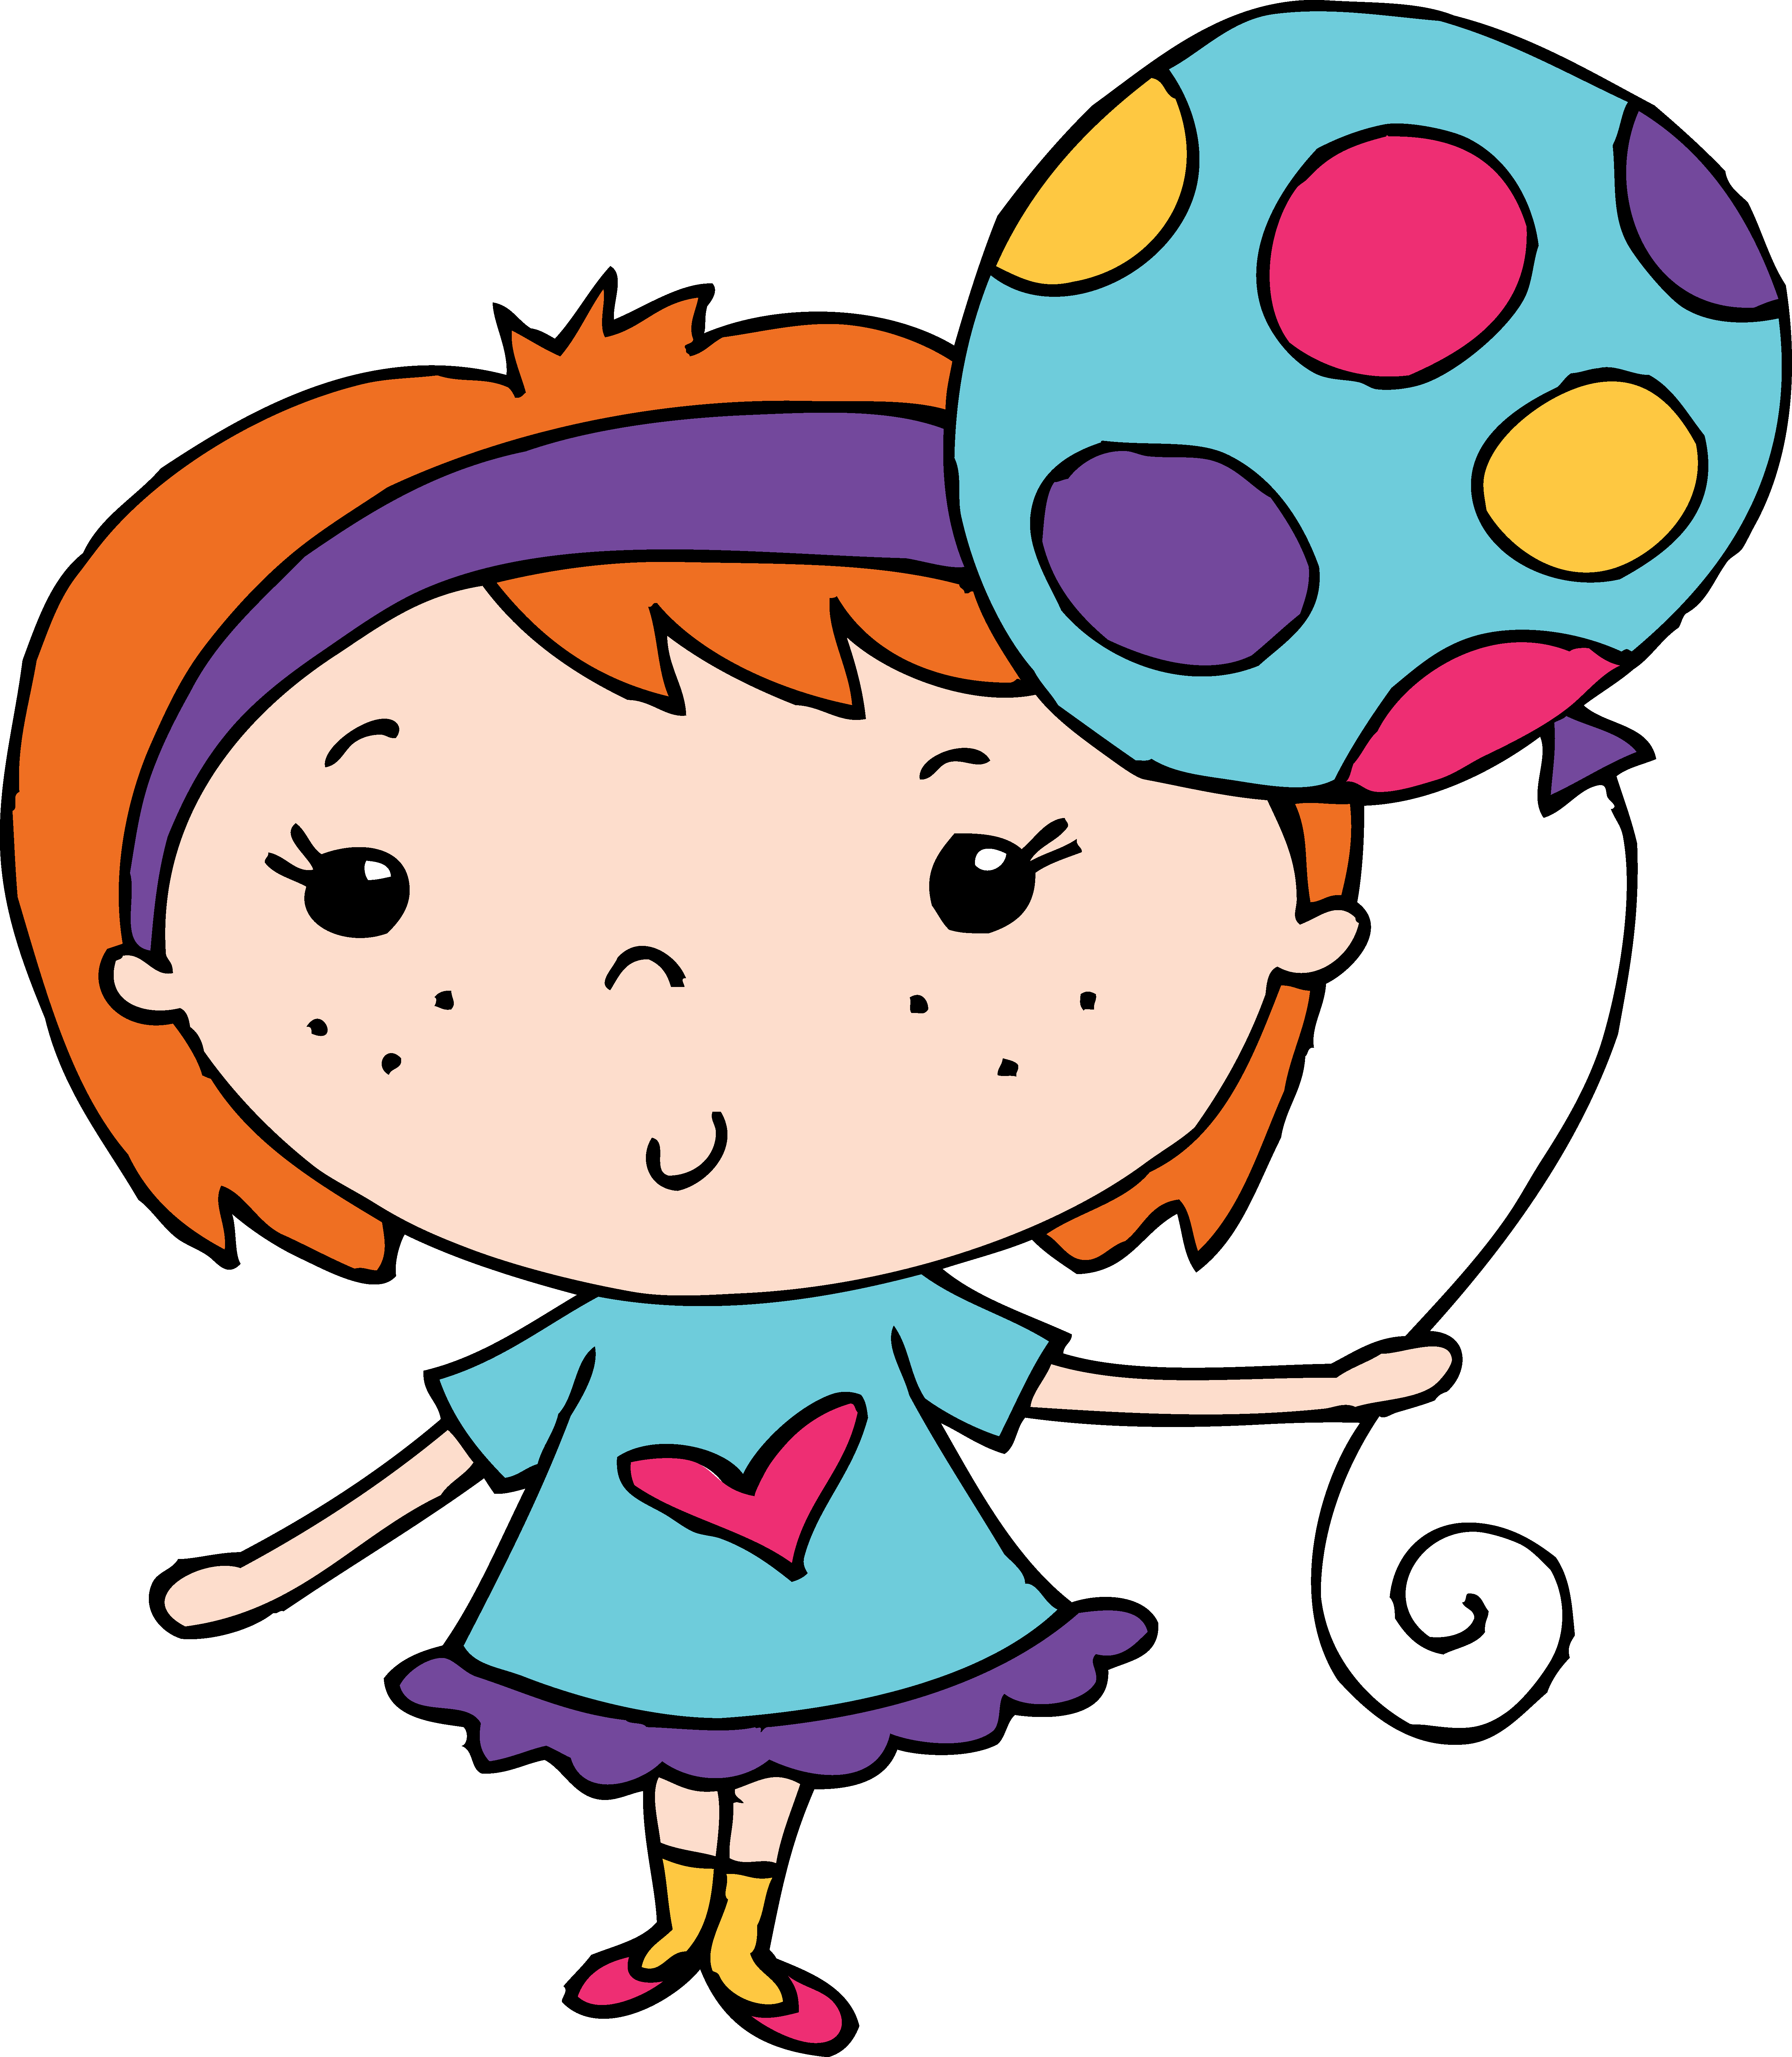 Freckles clipart Balloon a Girl Holding Free